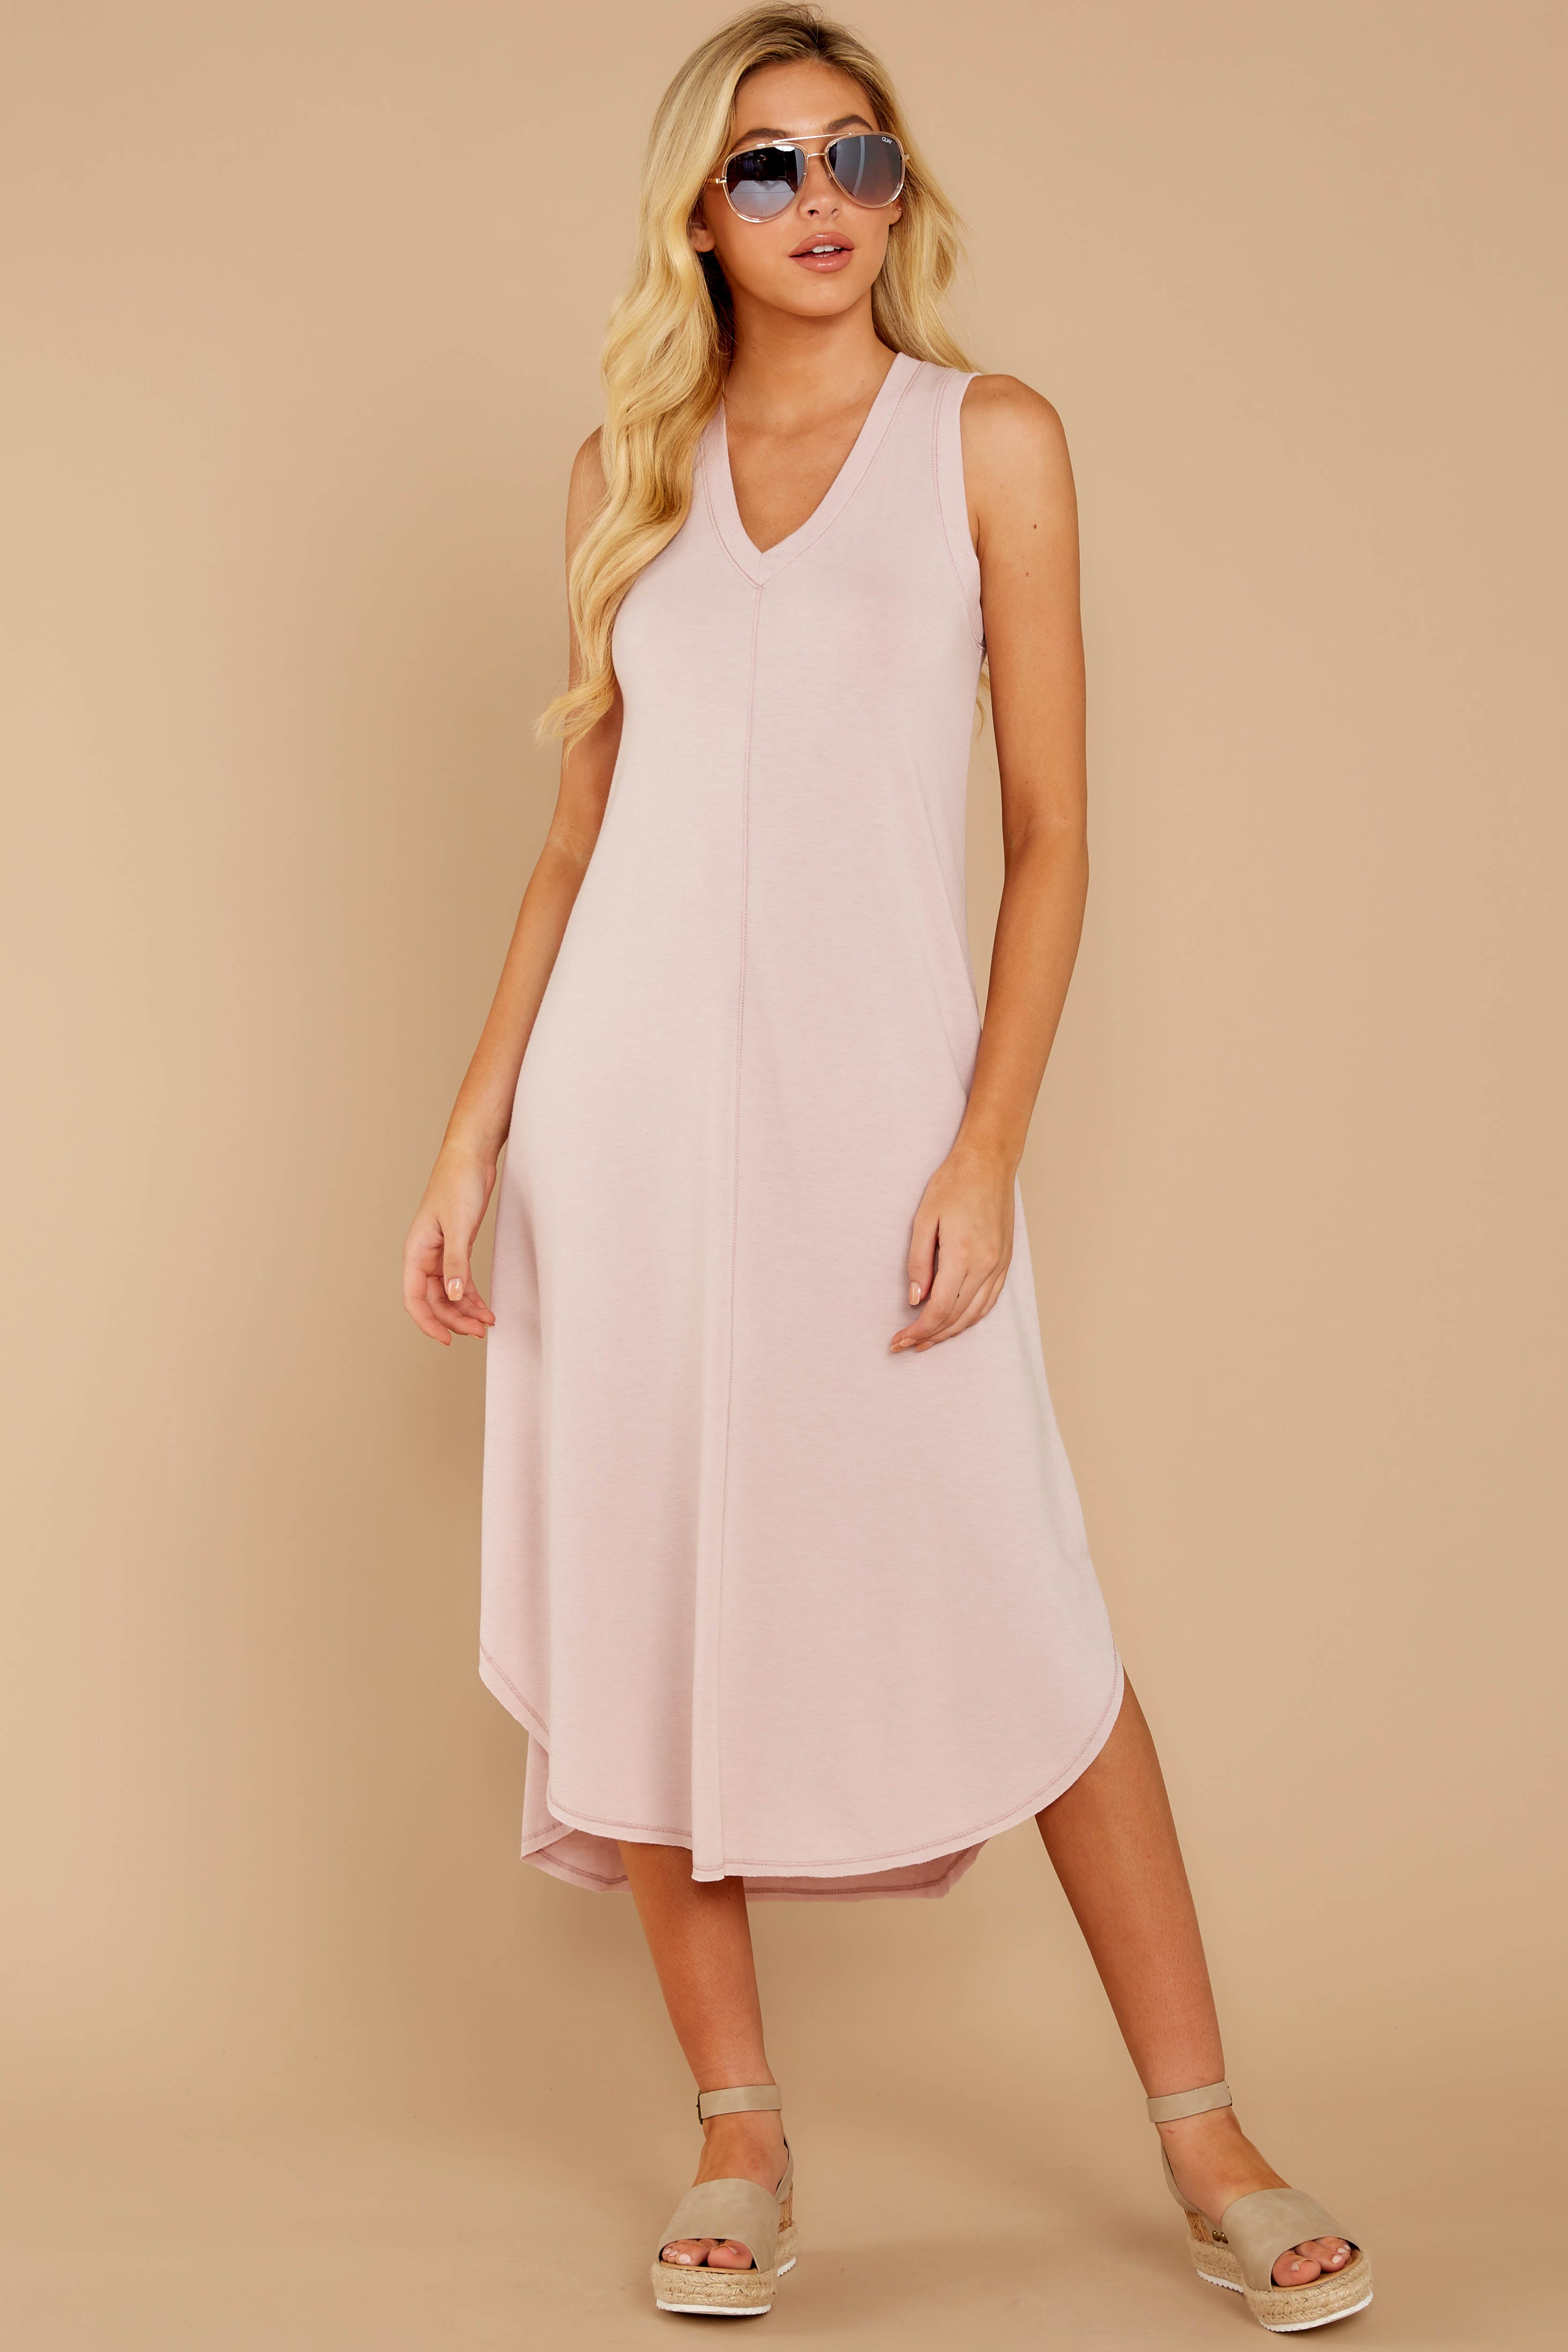 4 Unleashed Comfort Powder Pink Midi Dress at reddressboutique.com